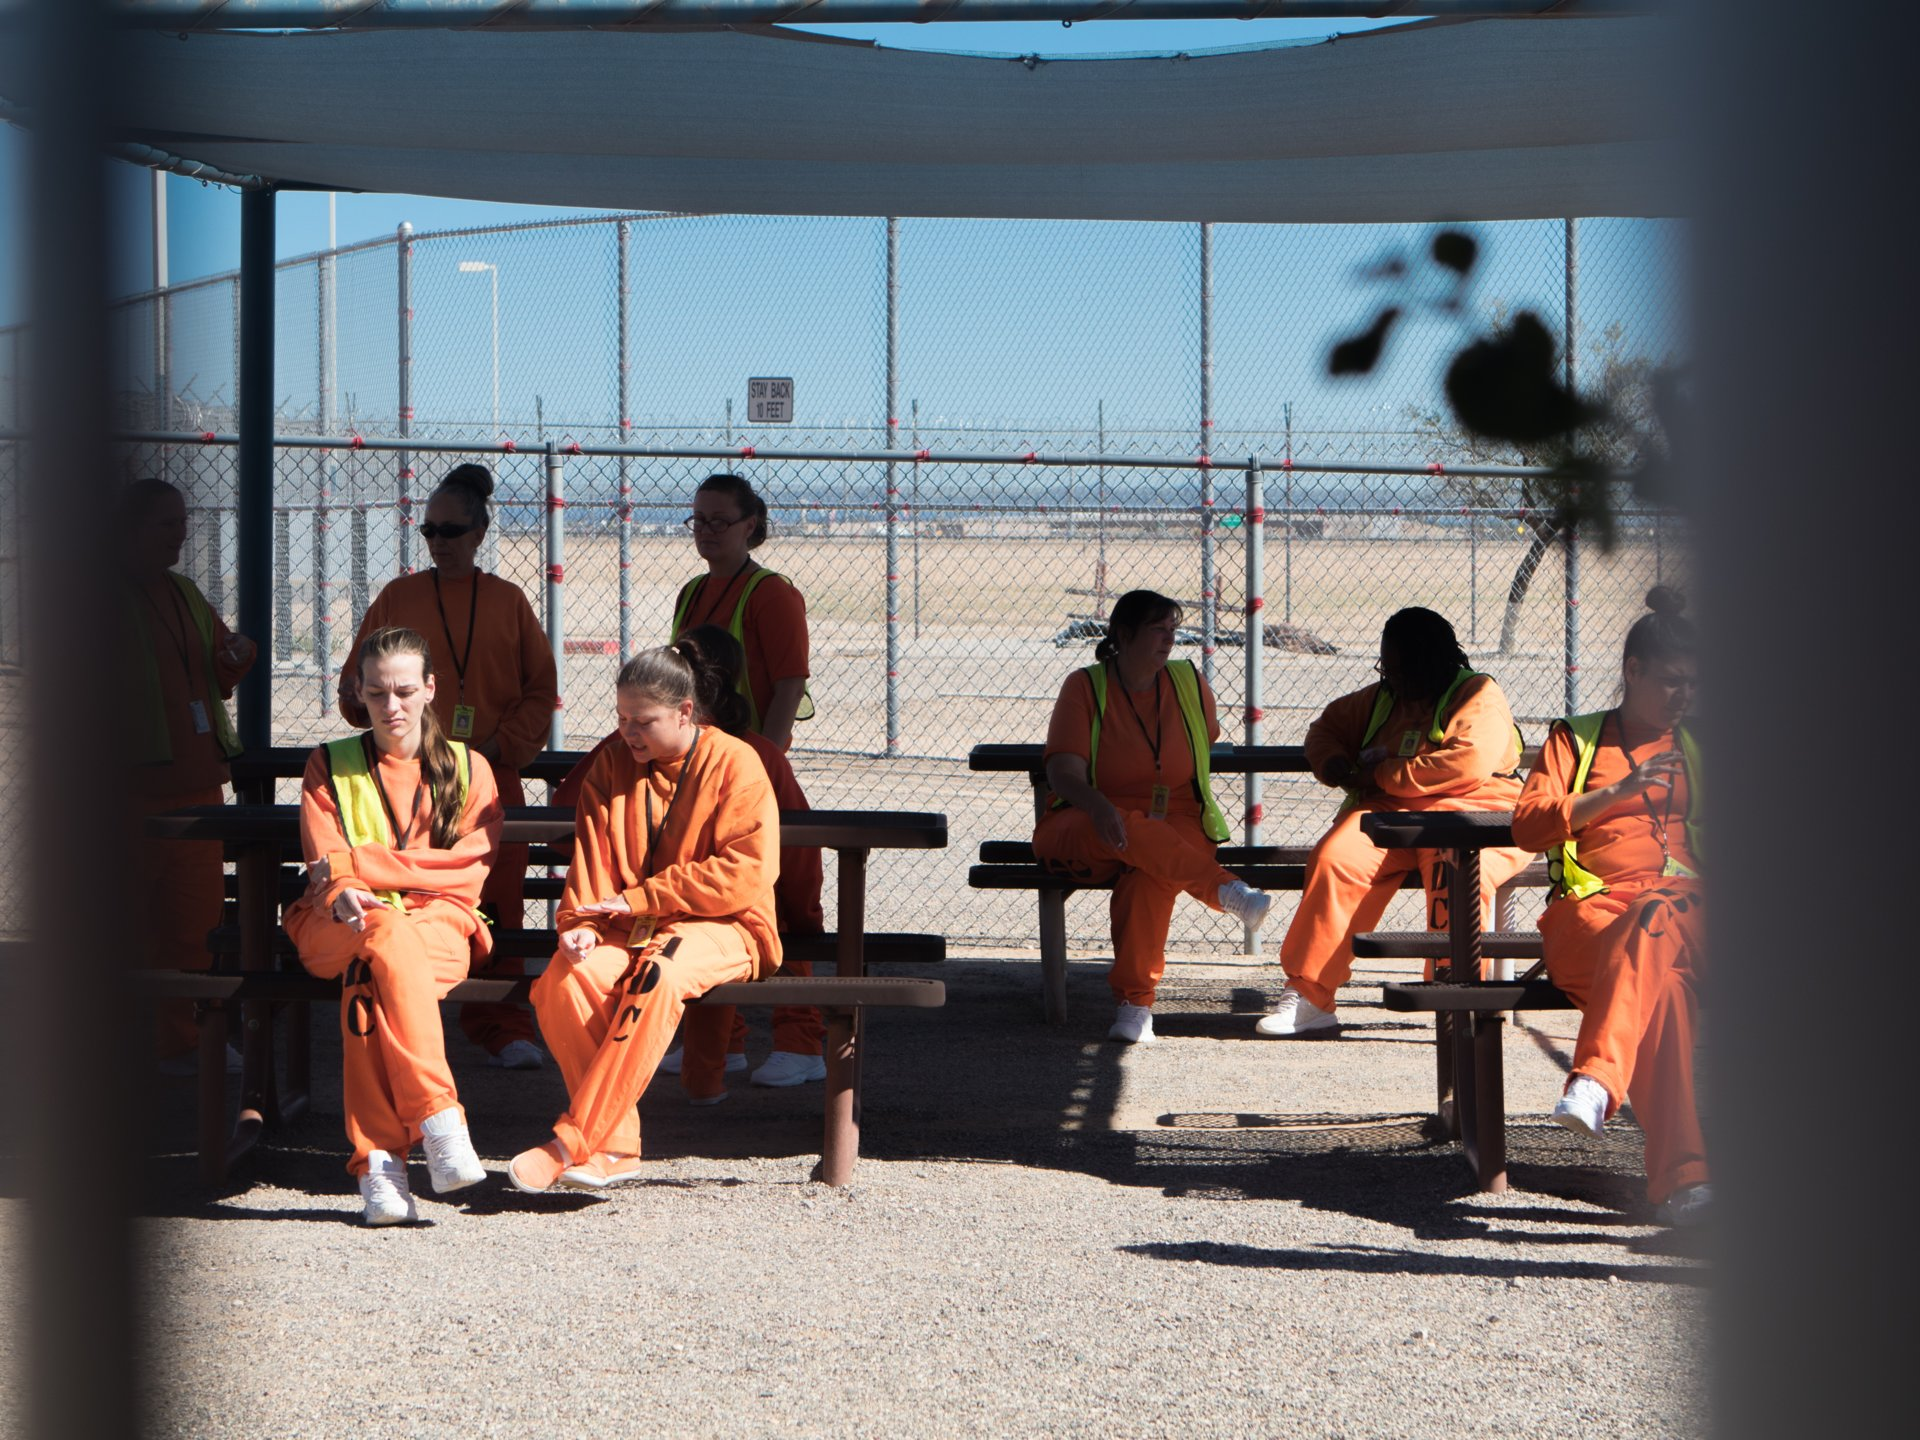 eleverde trains and employs incarcerated women in Perryville, a prison center in Arizona. Televerde